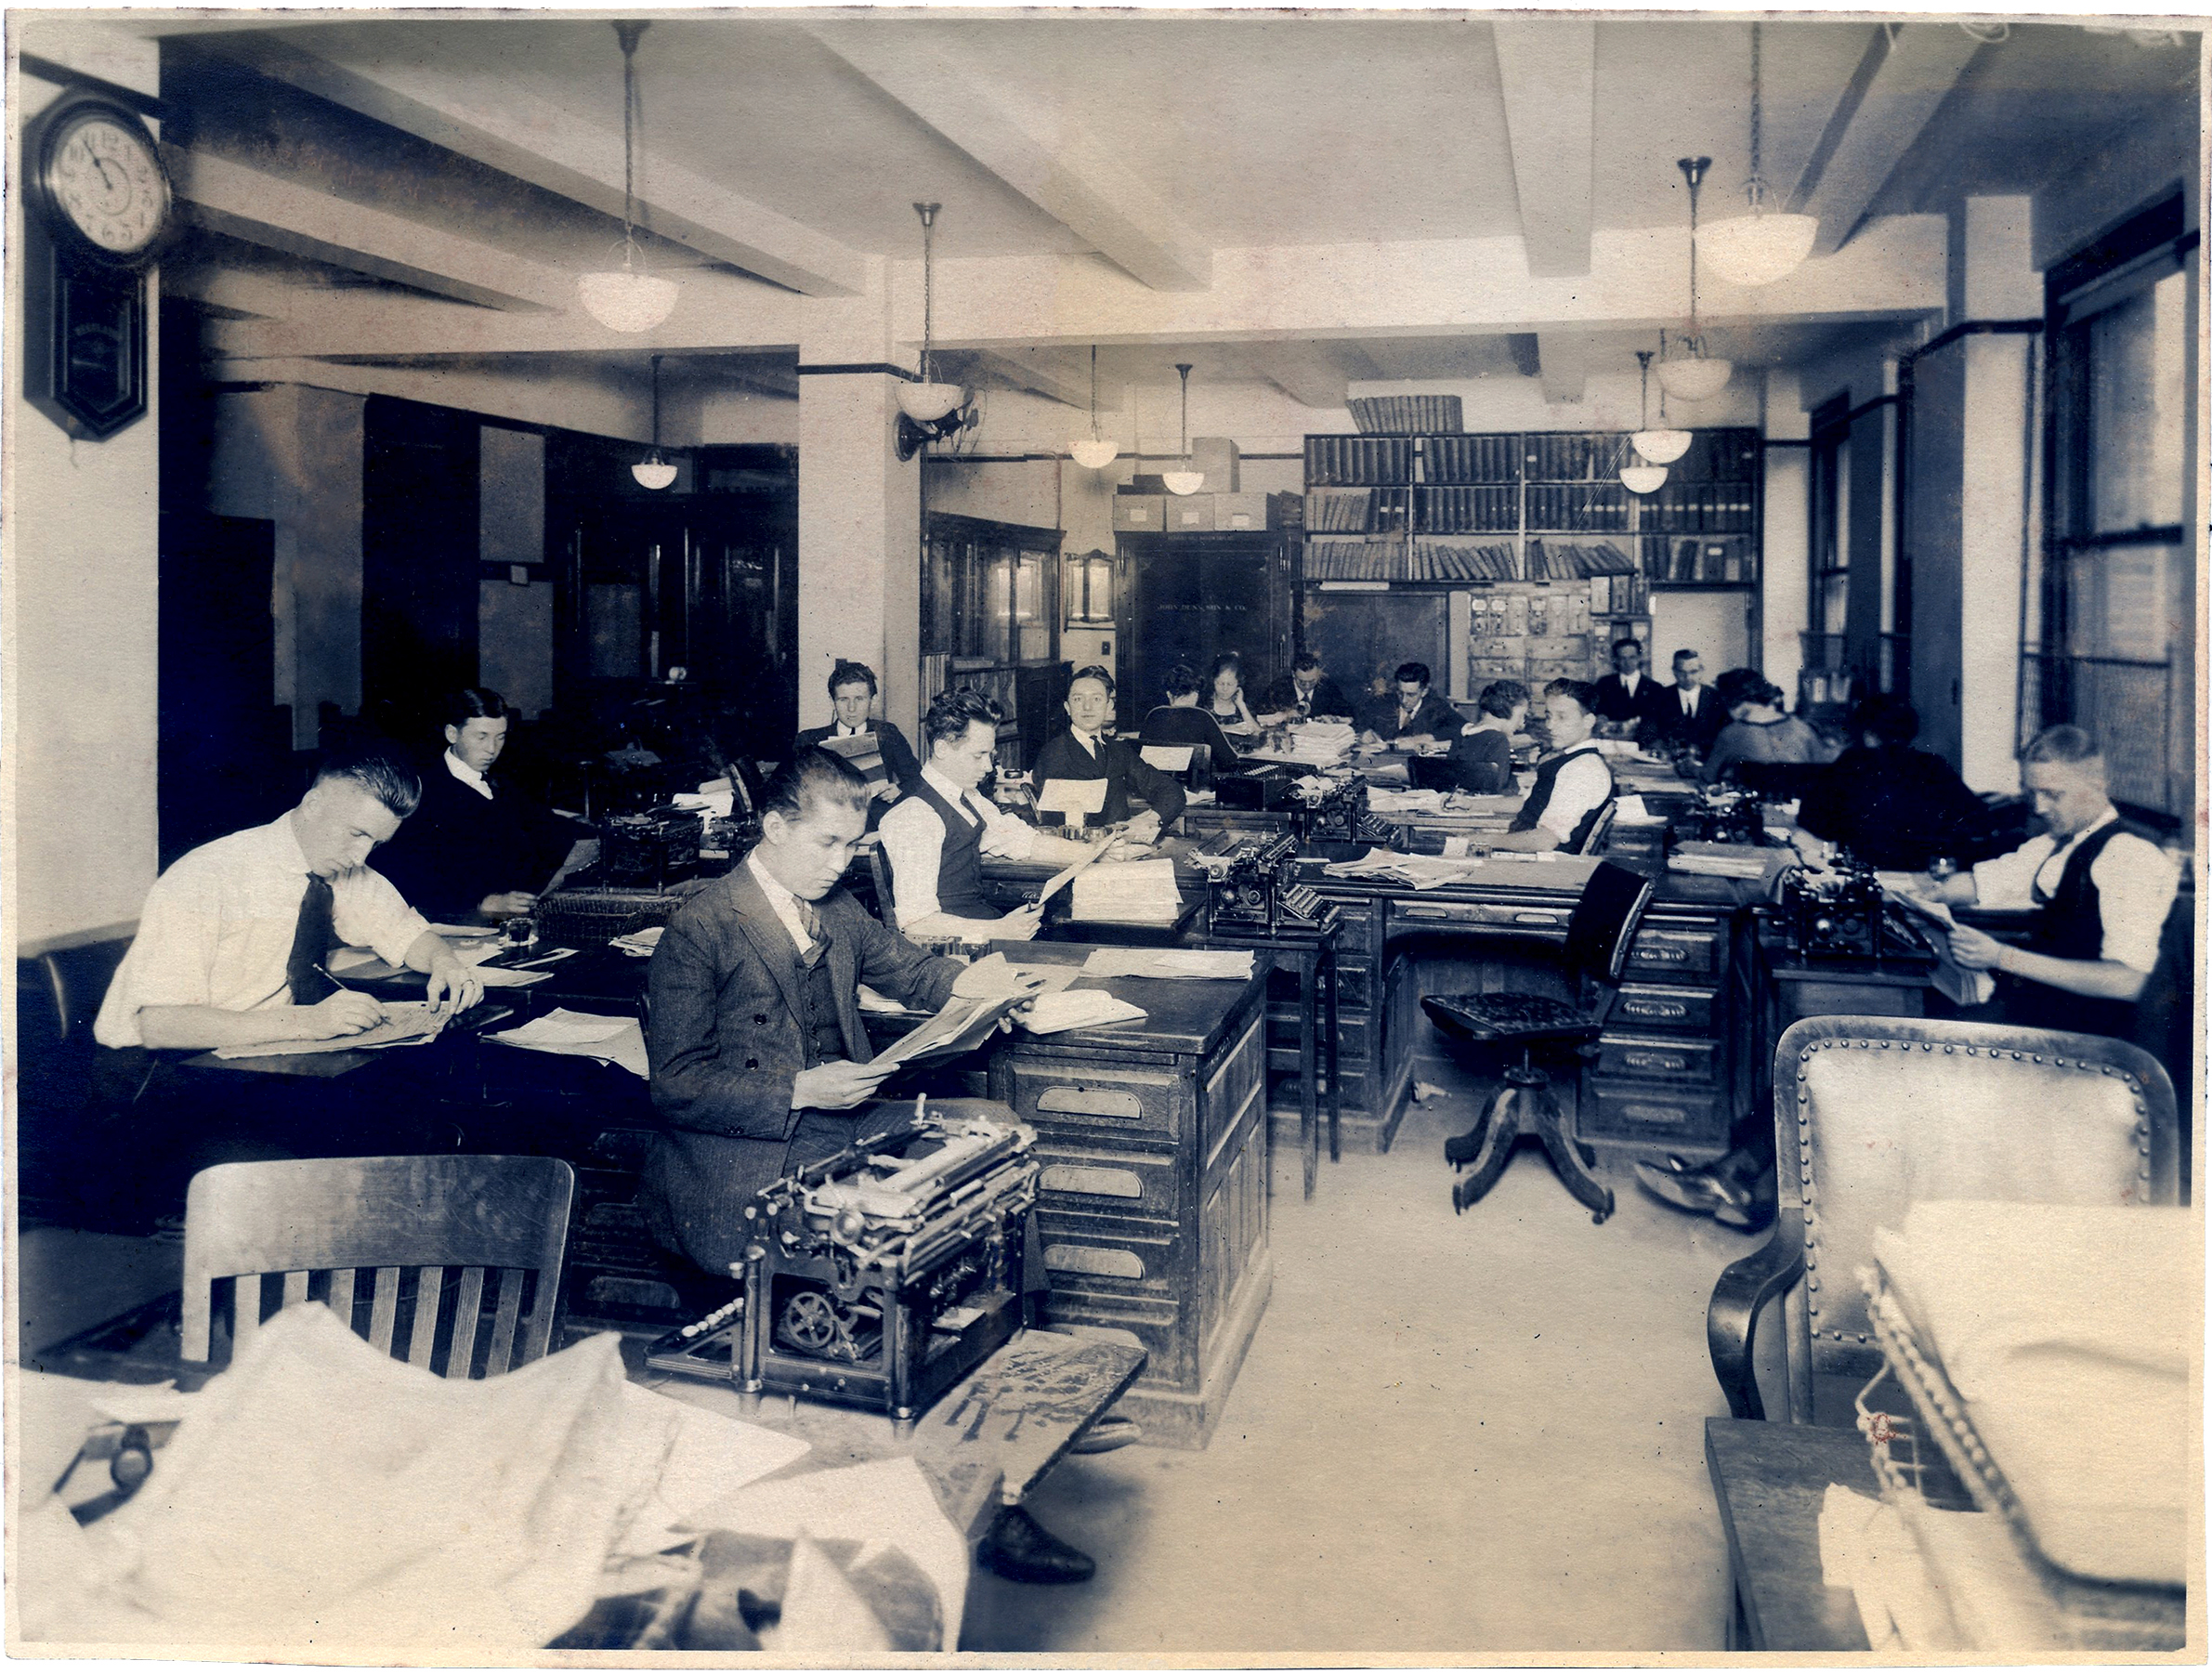 Interesting Vintage Office Photo With Office Workers